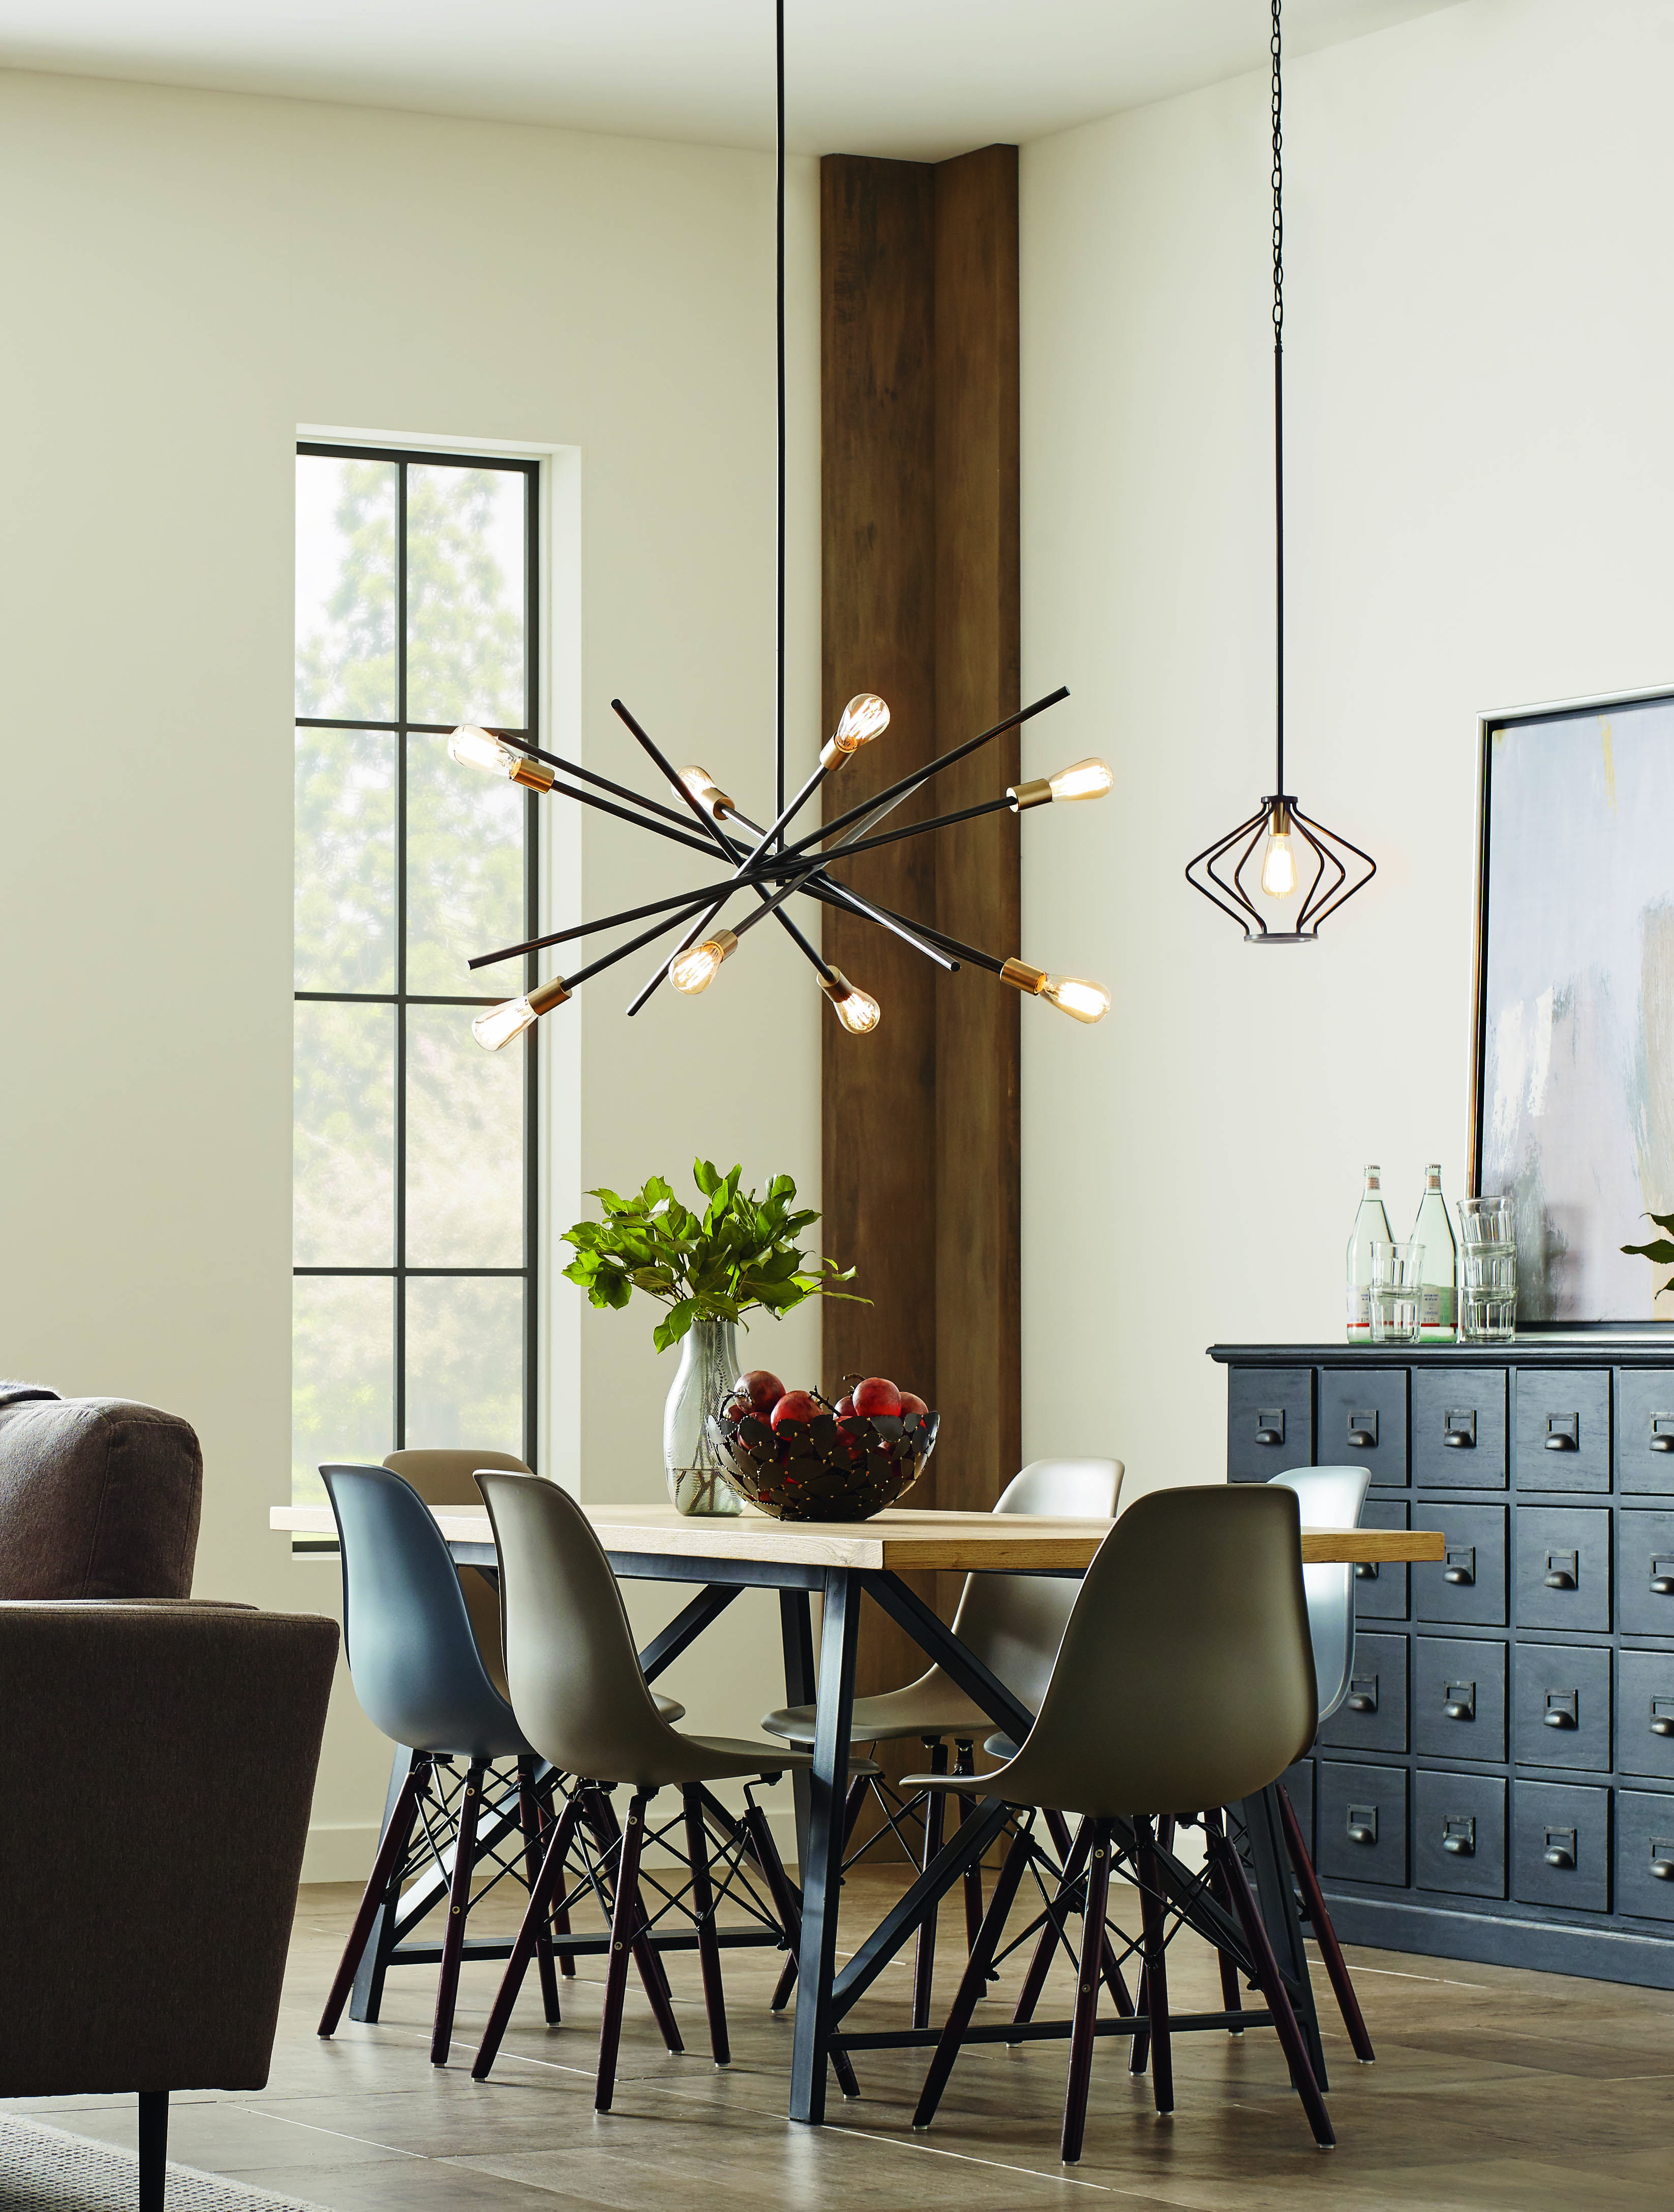 Mix And Match With The Astra Chandelier And The Hangar Pendant An Iconic Fixture Dining Room Chandelier Modern